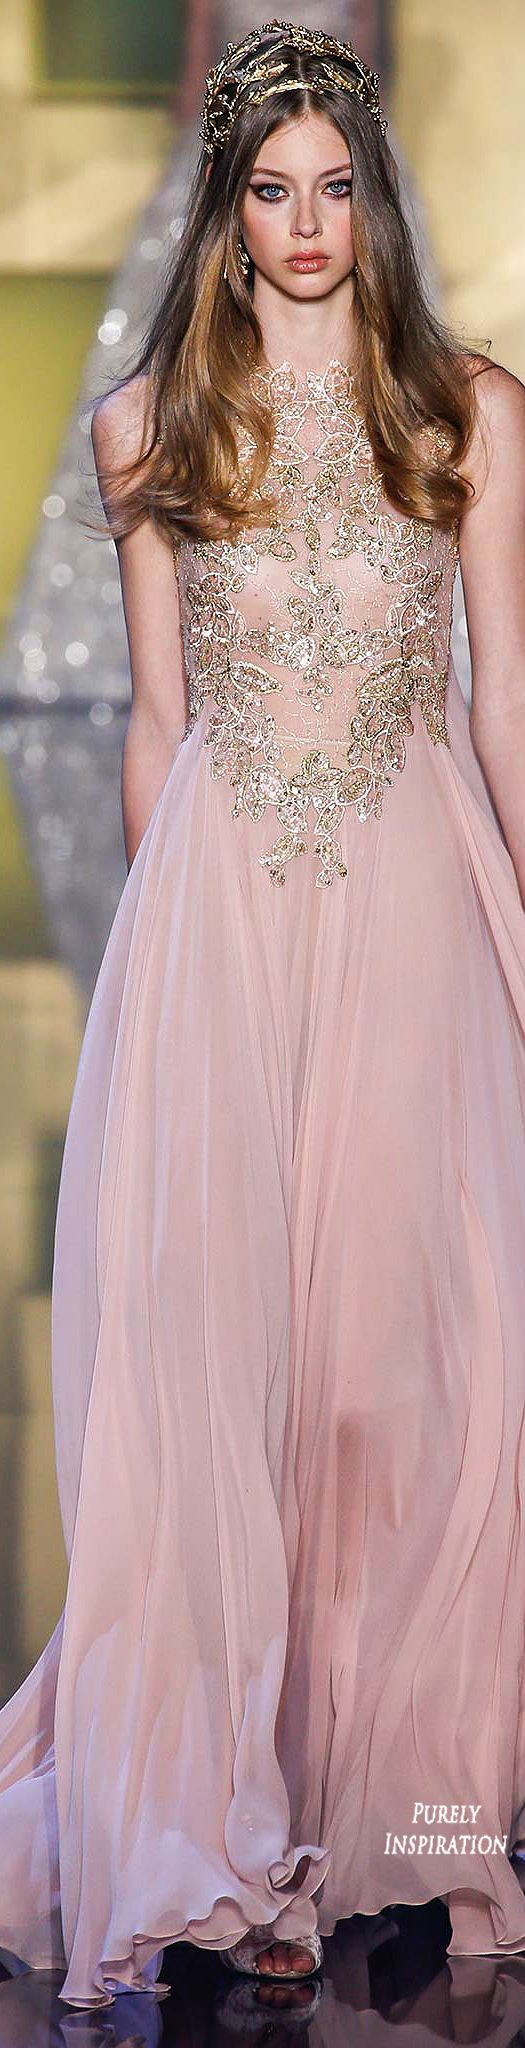 Elie Saab Haute Couture Fall 2015 | Purely Inspiration